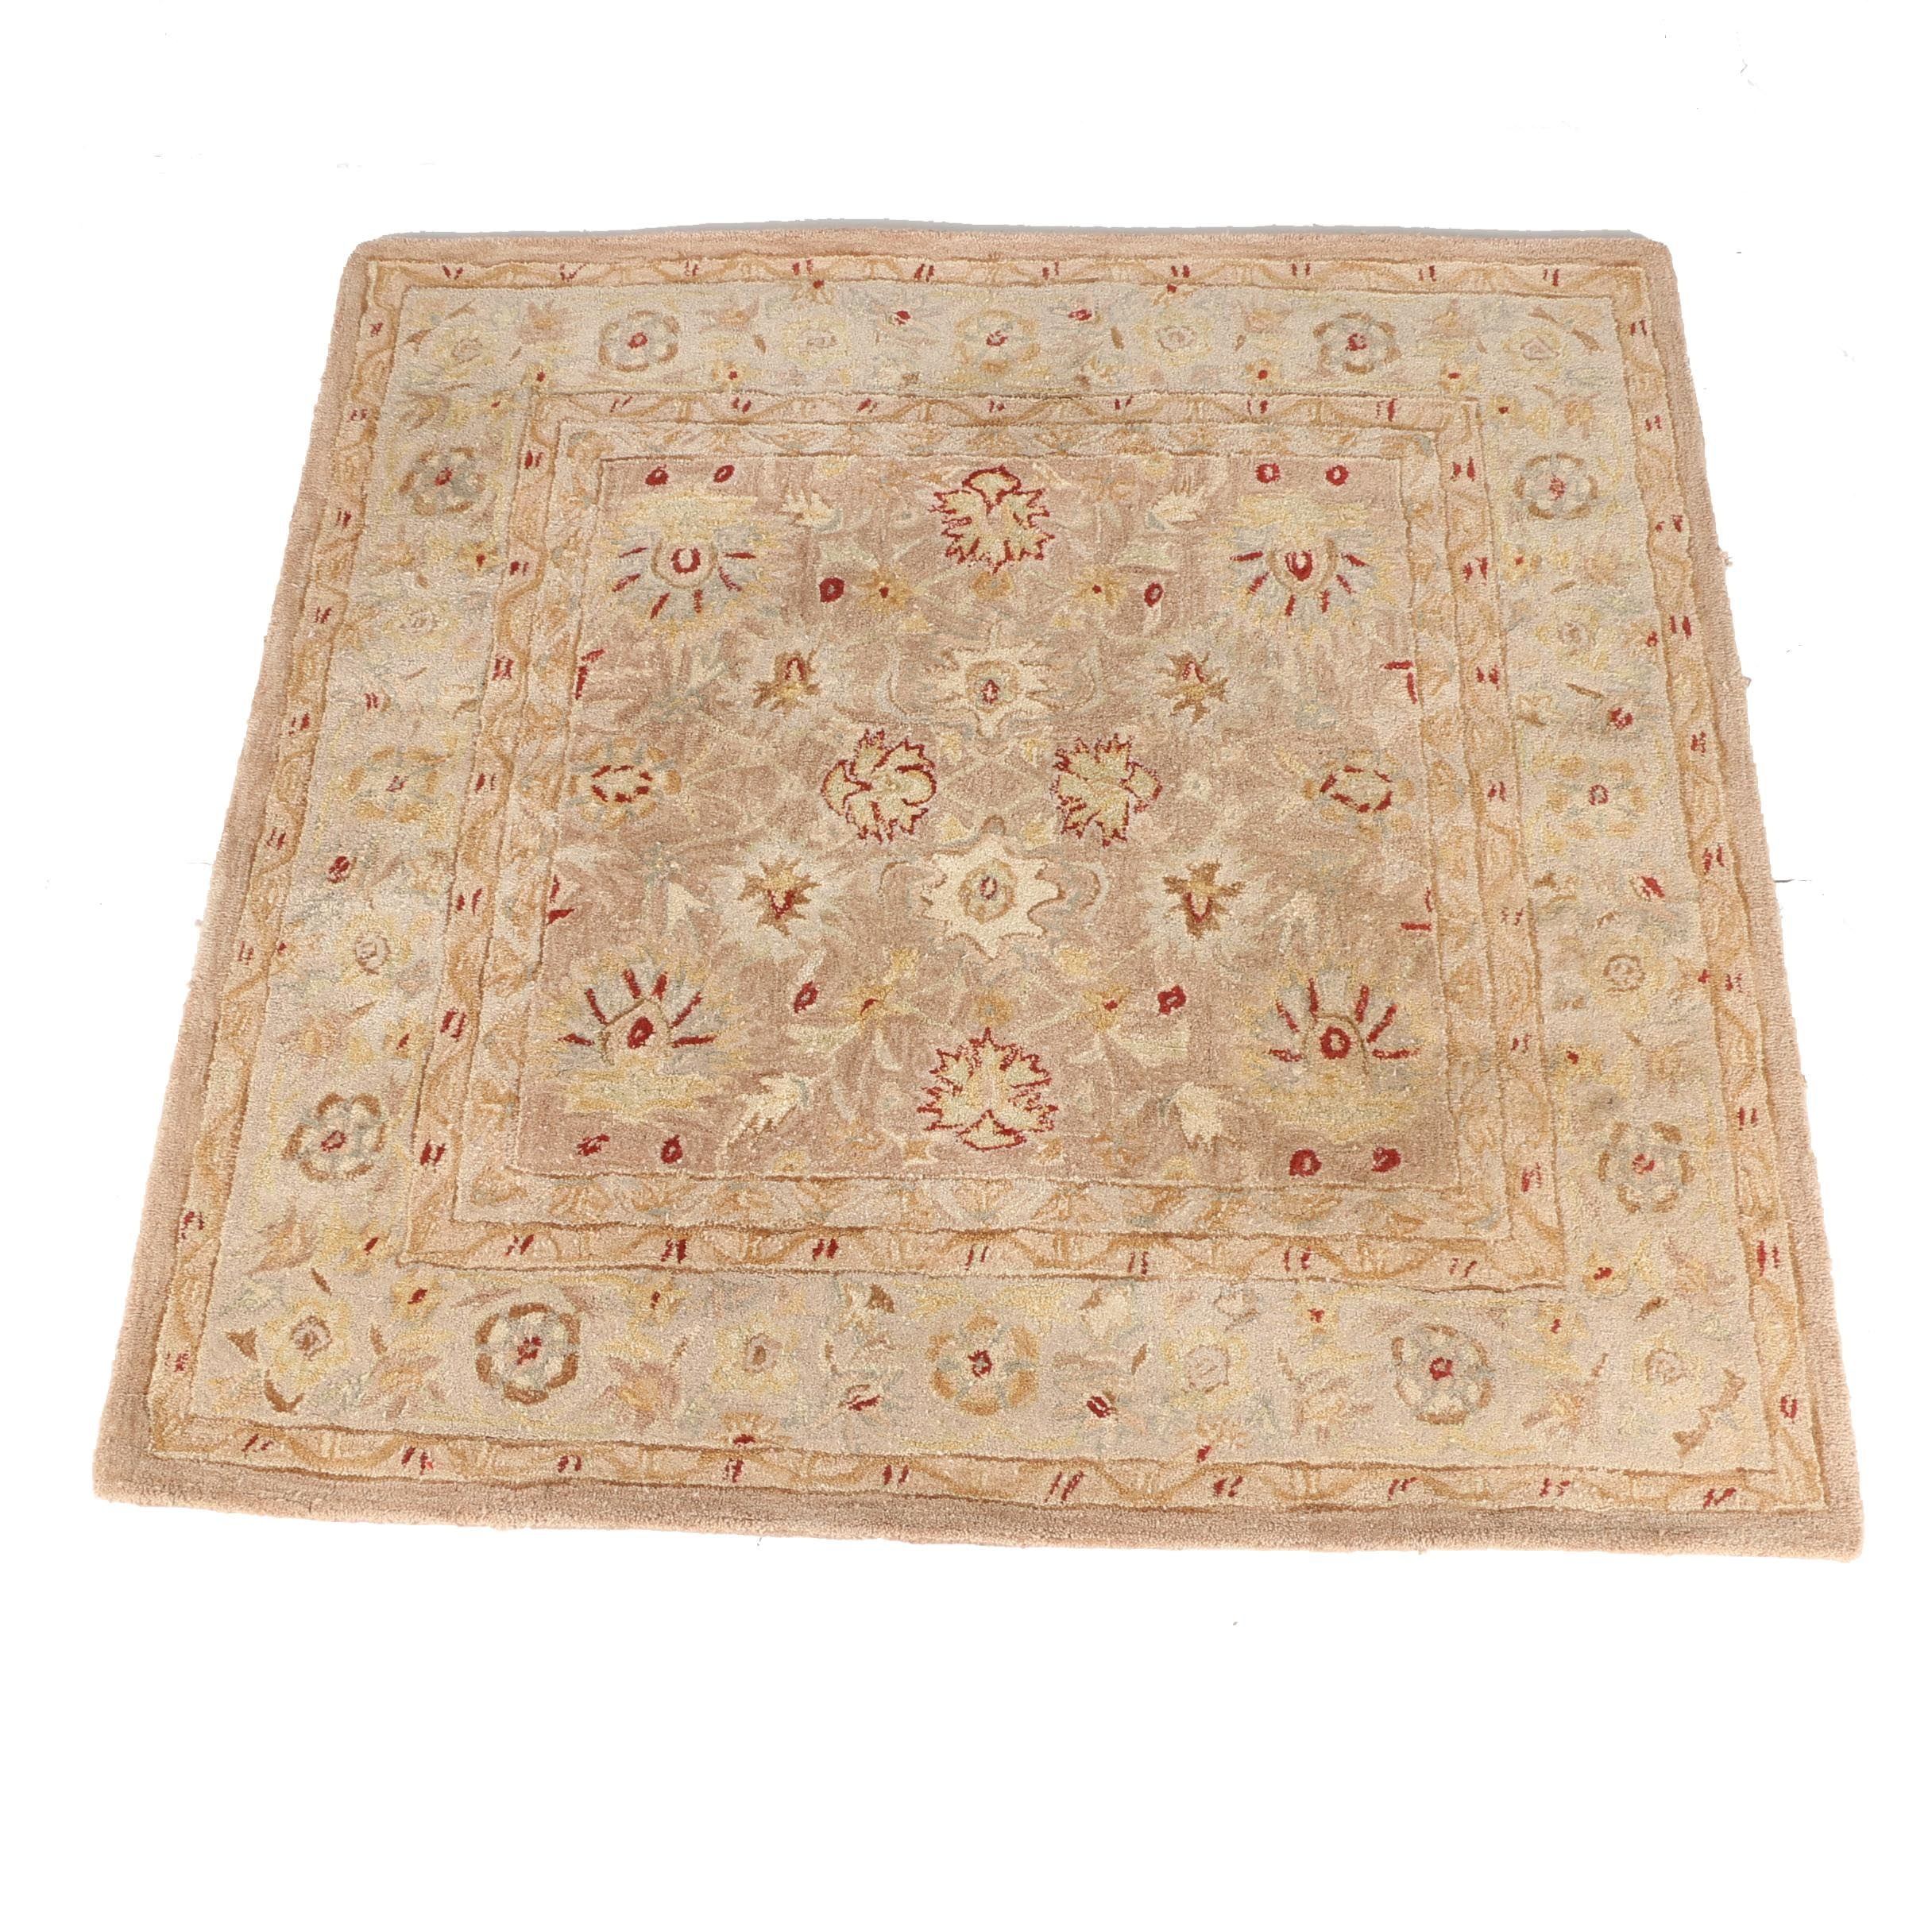 "Hand-Tufted Safavieh ""Anatolia"" Wool Area Rug"